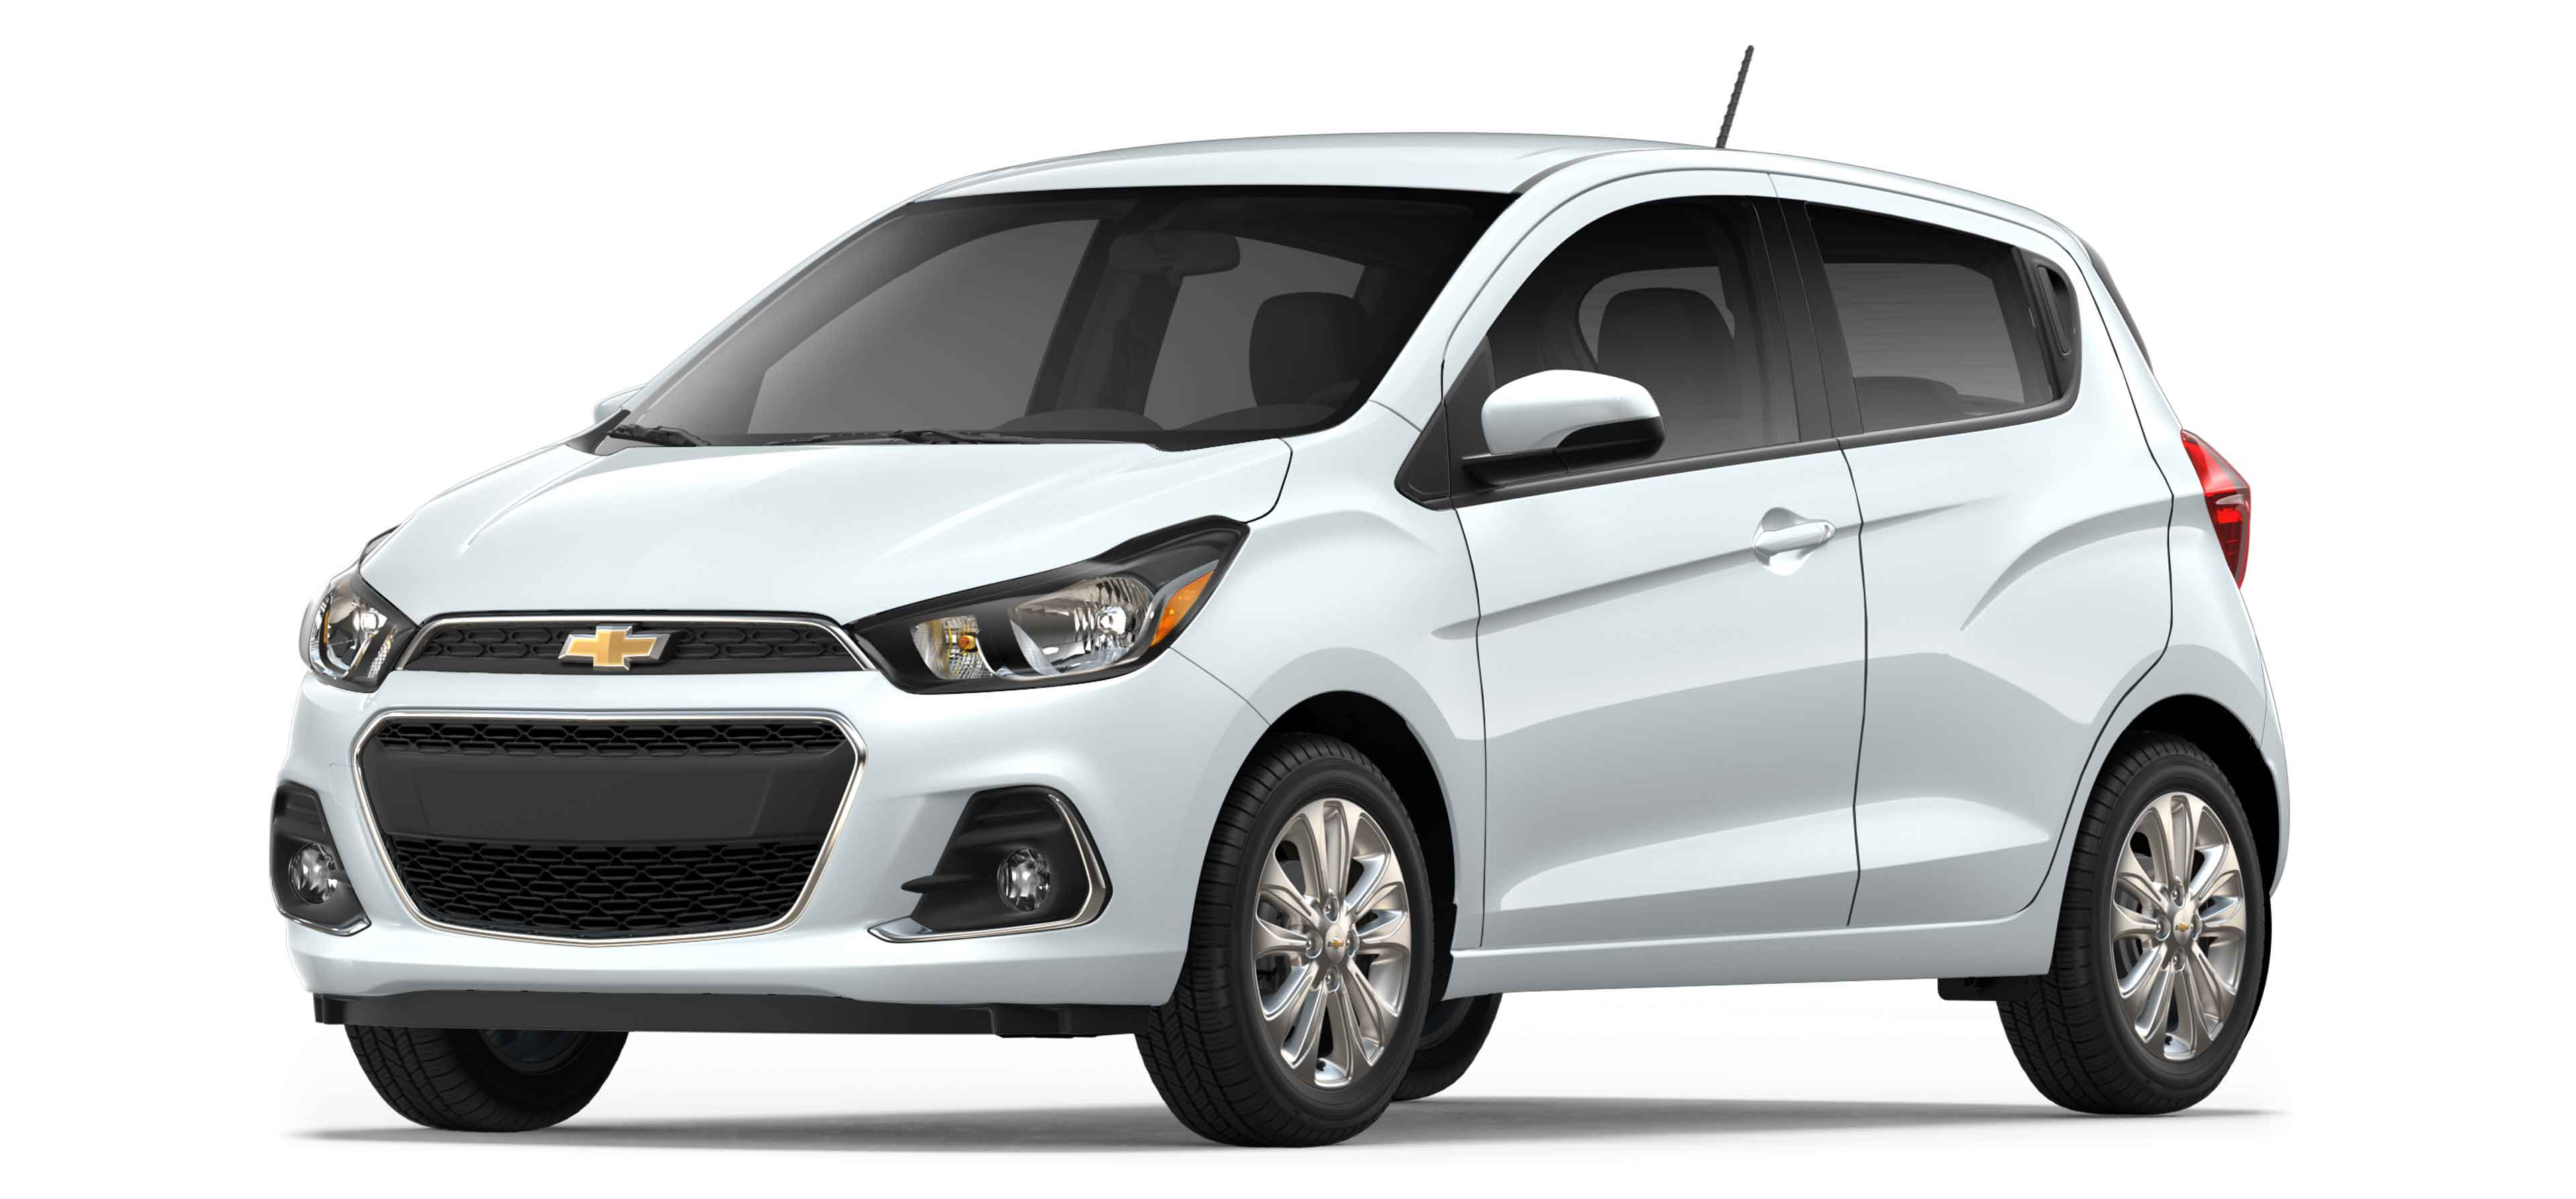 Certified Used Cars >> Search Chevrolet Spark Seattle dealer | Chevrolet Spark Renton